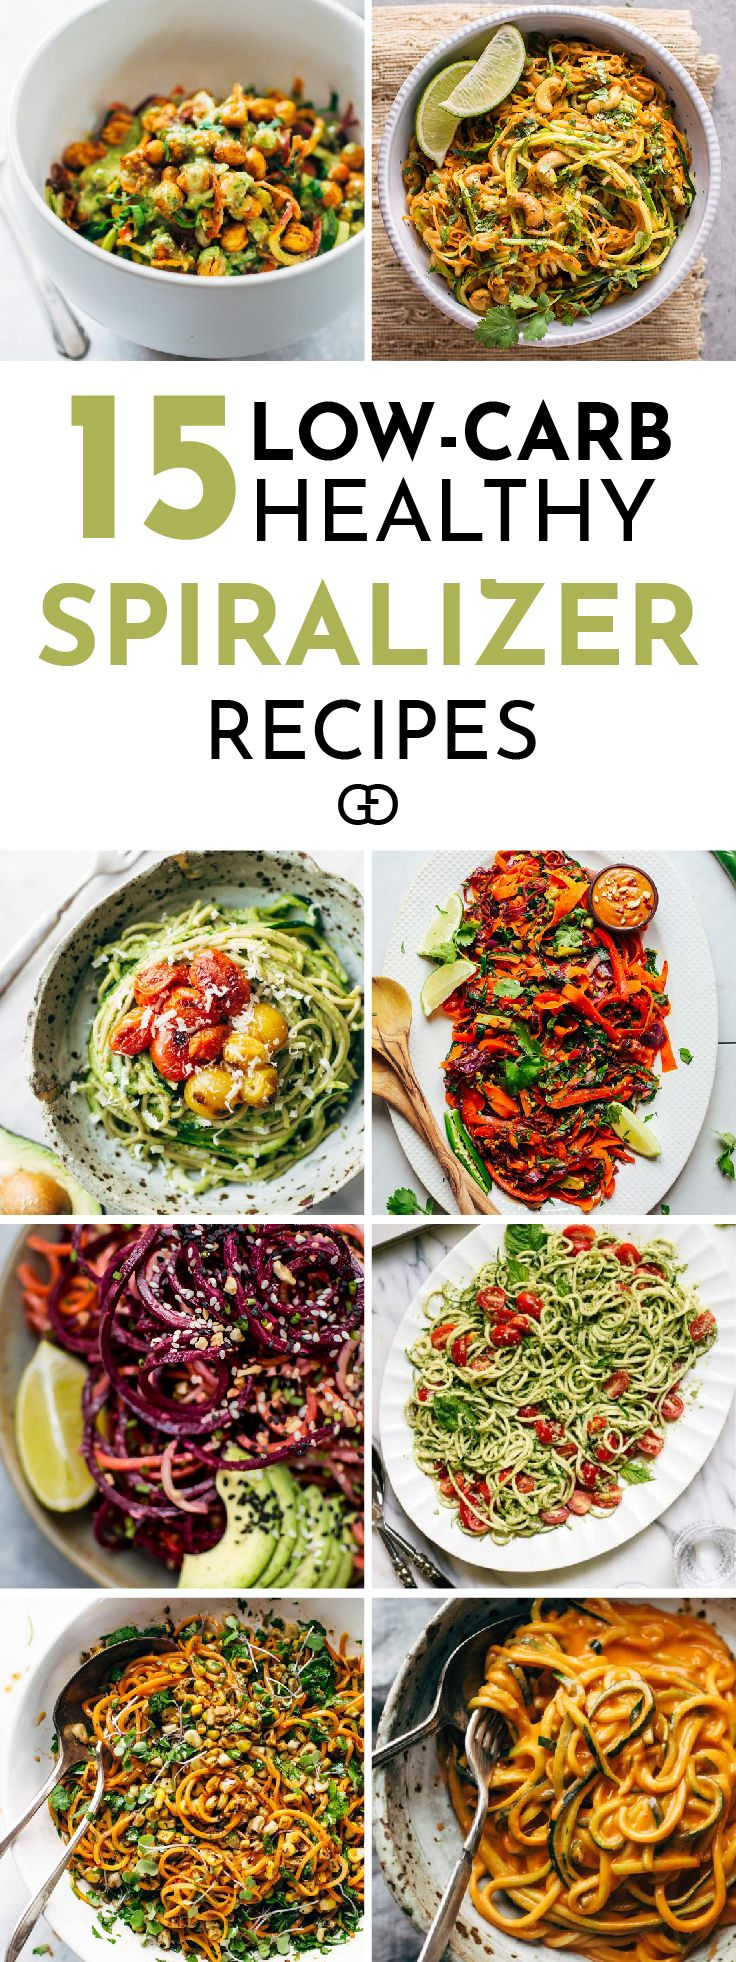 Quick and easy low-carb spiralizer recipes you need to try. Plus all the tricks and tips you need to know to spiralize zucchini and any other vegetables, and how to store them to keep them fresh for longer! Genius!